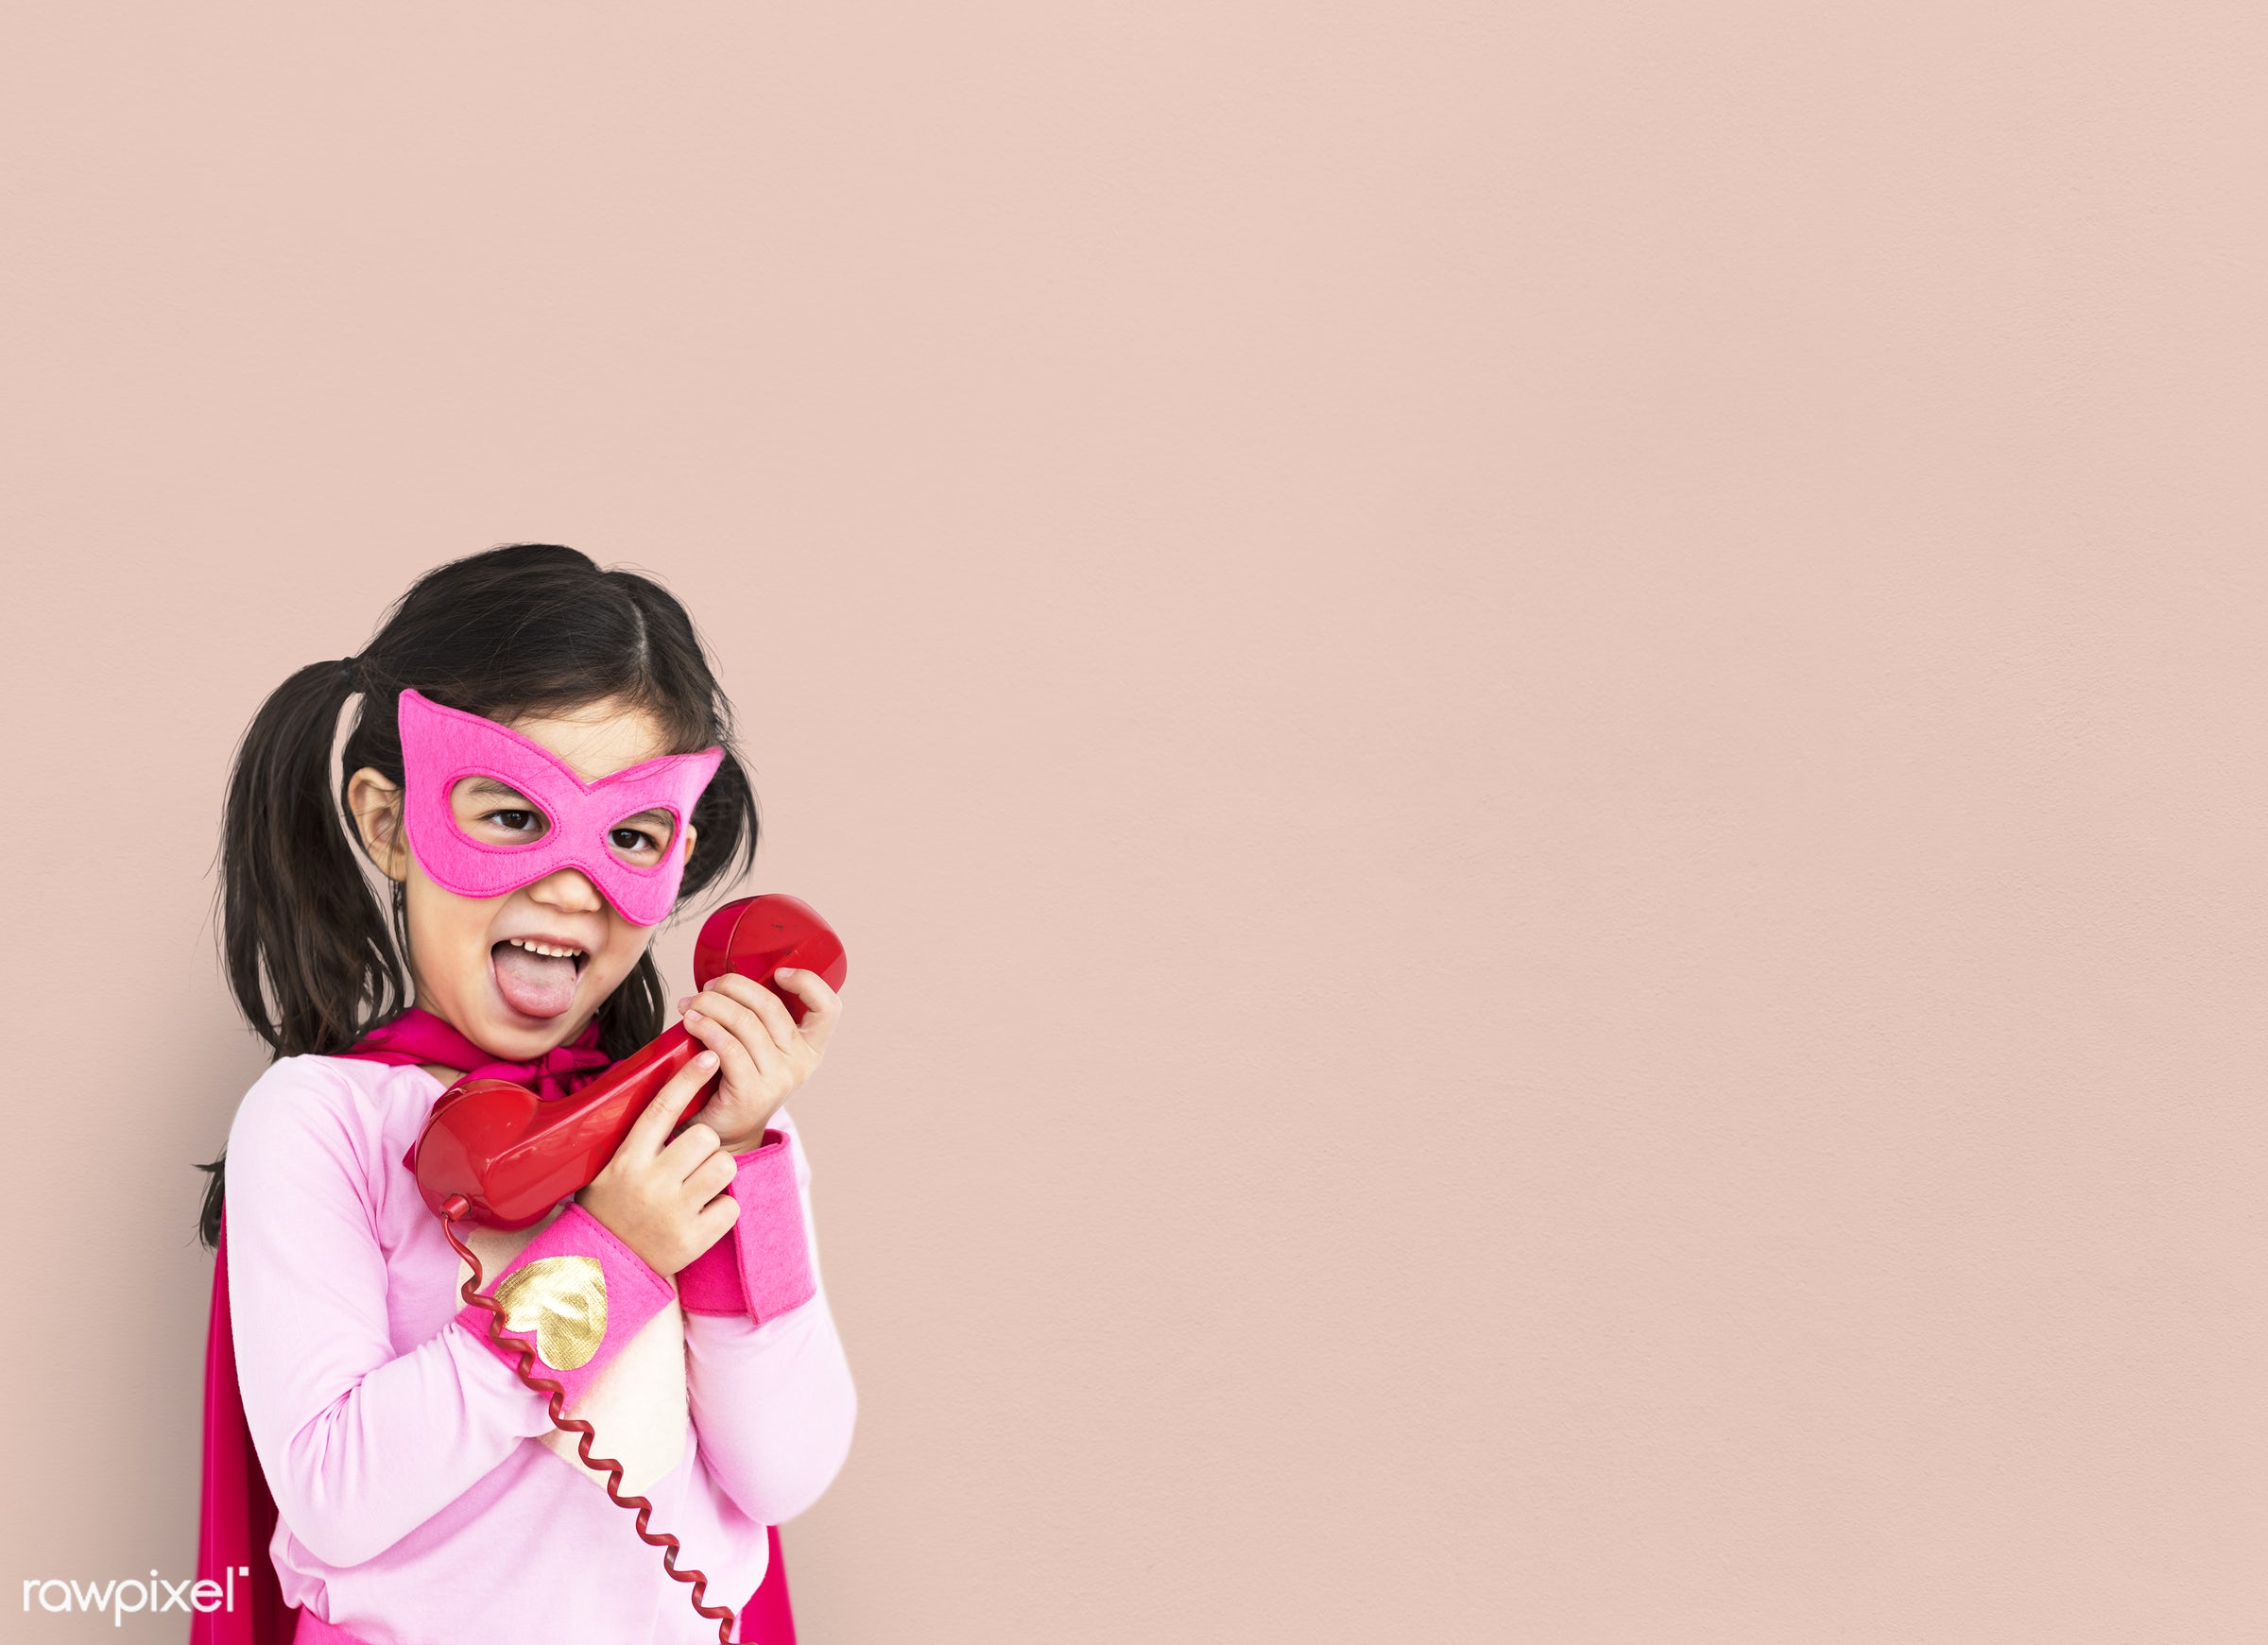 studio, expression, person, mask, people, kid, telecommunication, solo, pink, mixed race, childhood, smile, cheerful,...